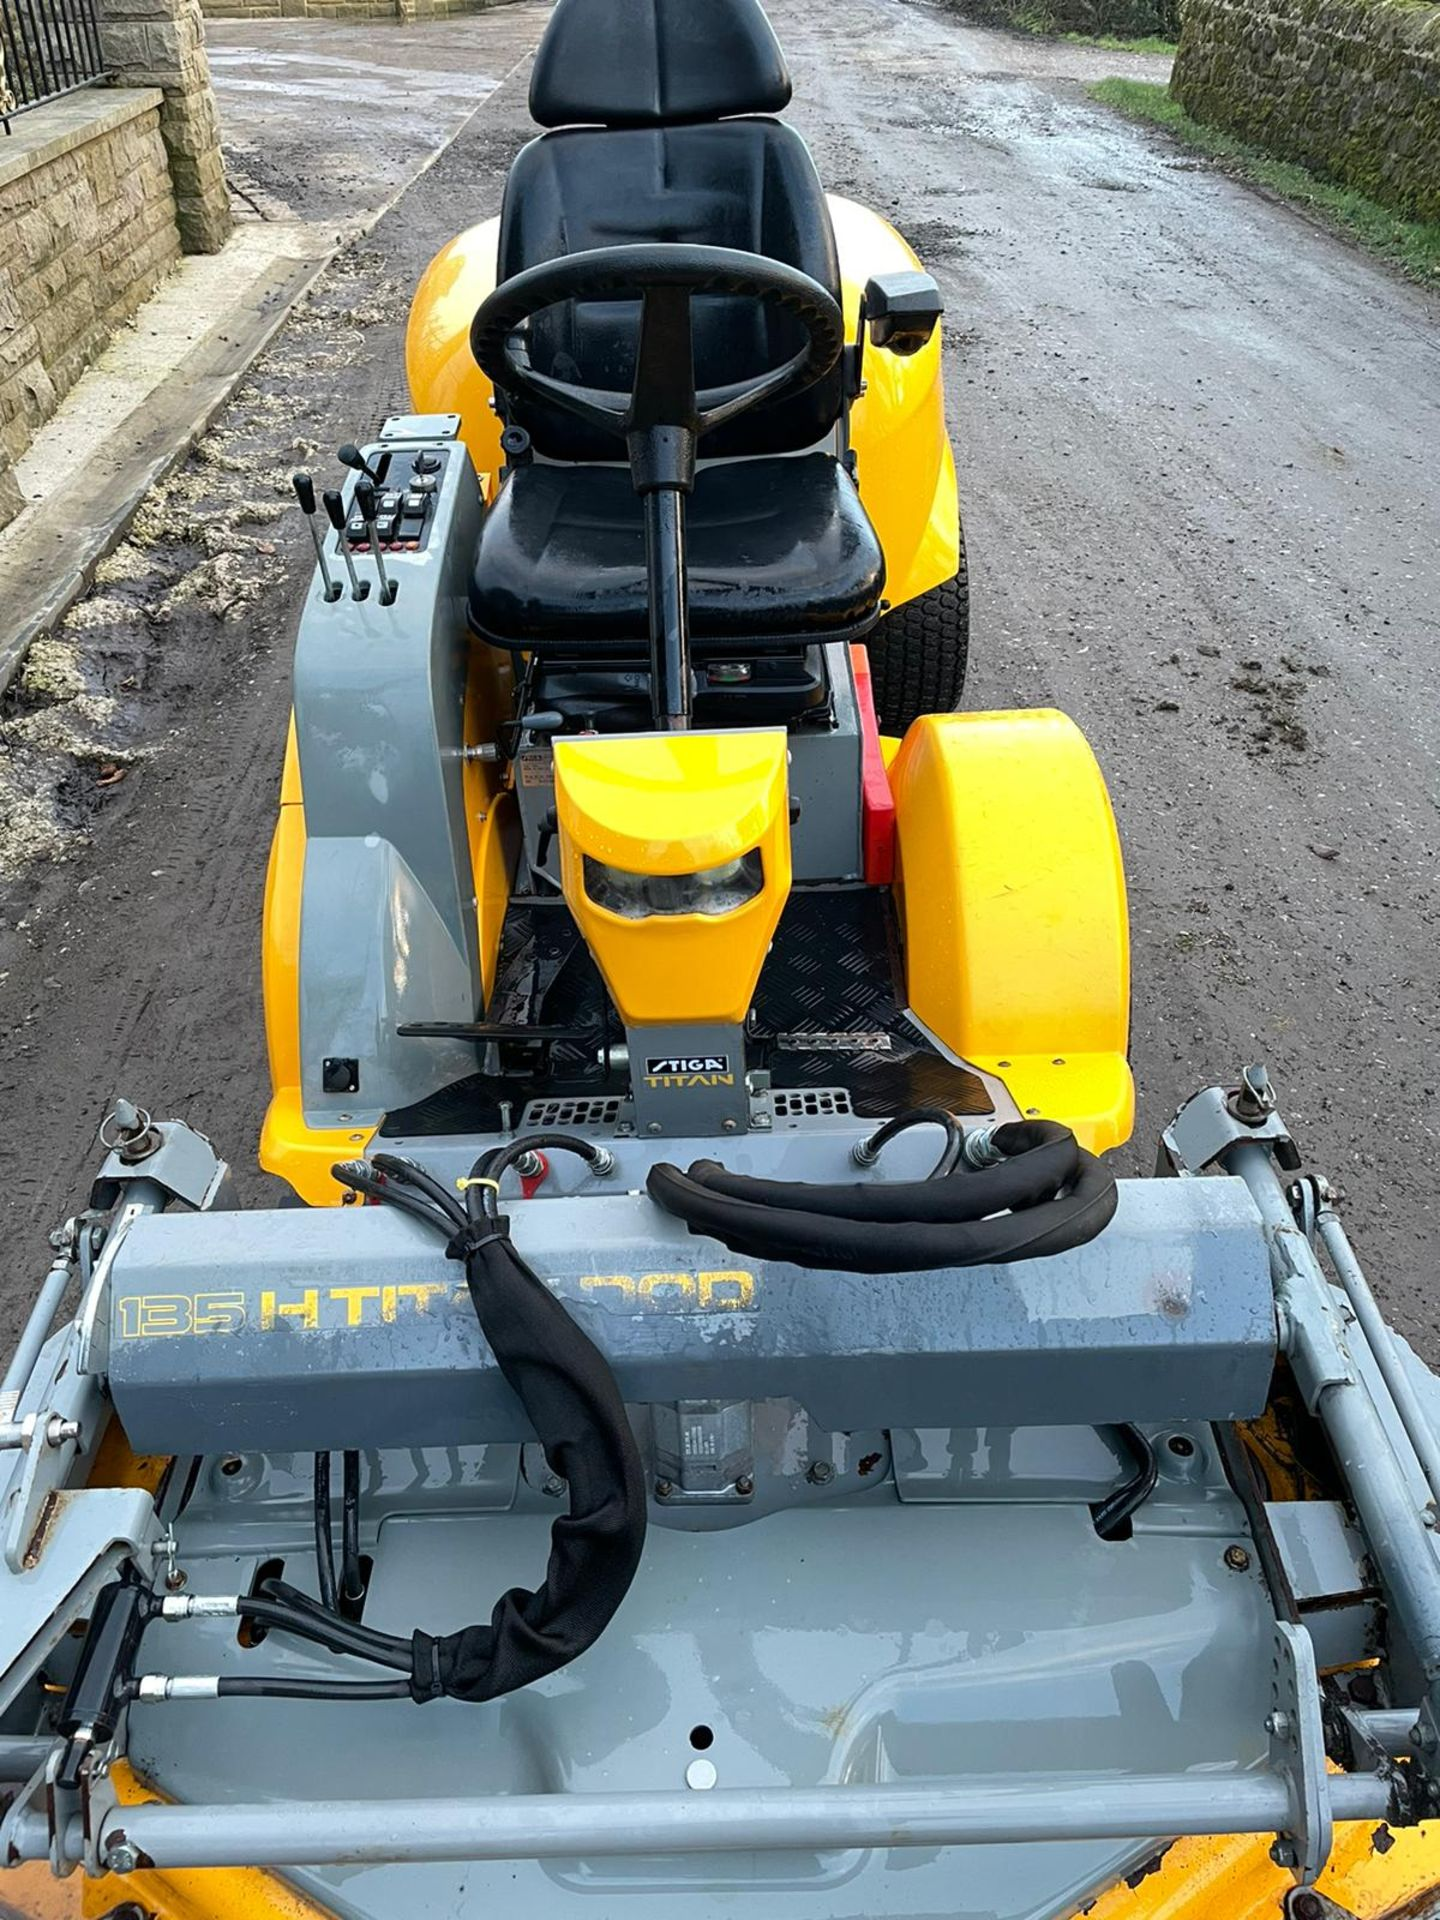 STIGA TITAN 26H RIDE ON LAWN MOWER, RUNS, DRIVES AND MOWS, FULL HYDRAULIC DECK, 650 HOURS *PLUS VAT* - Image 4 of 6